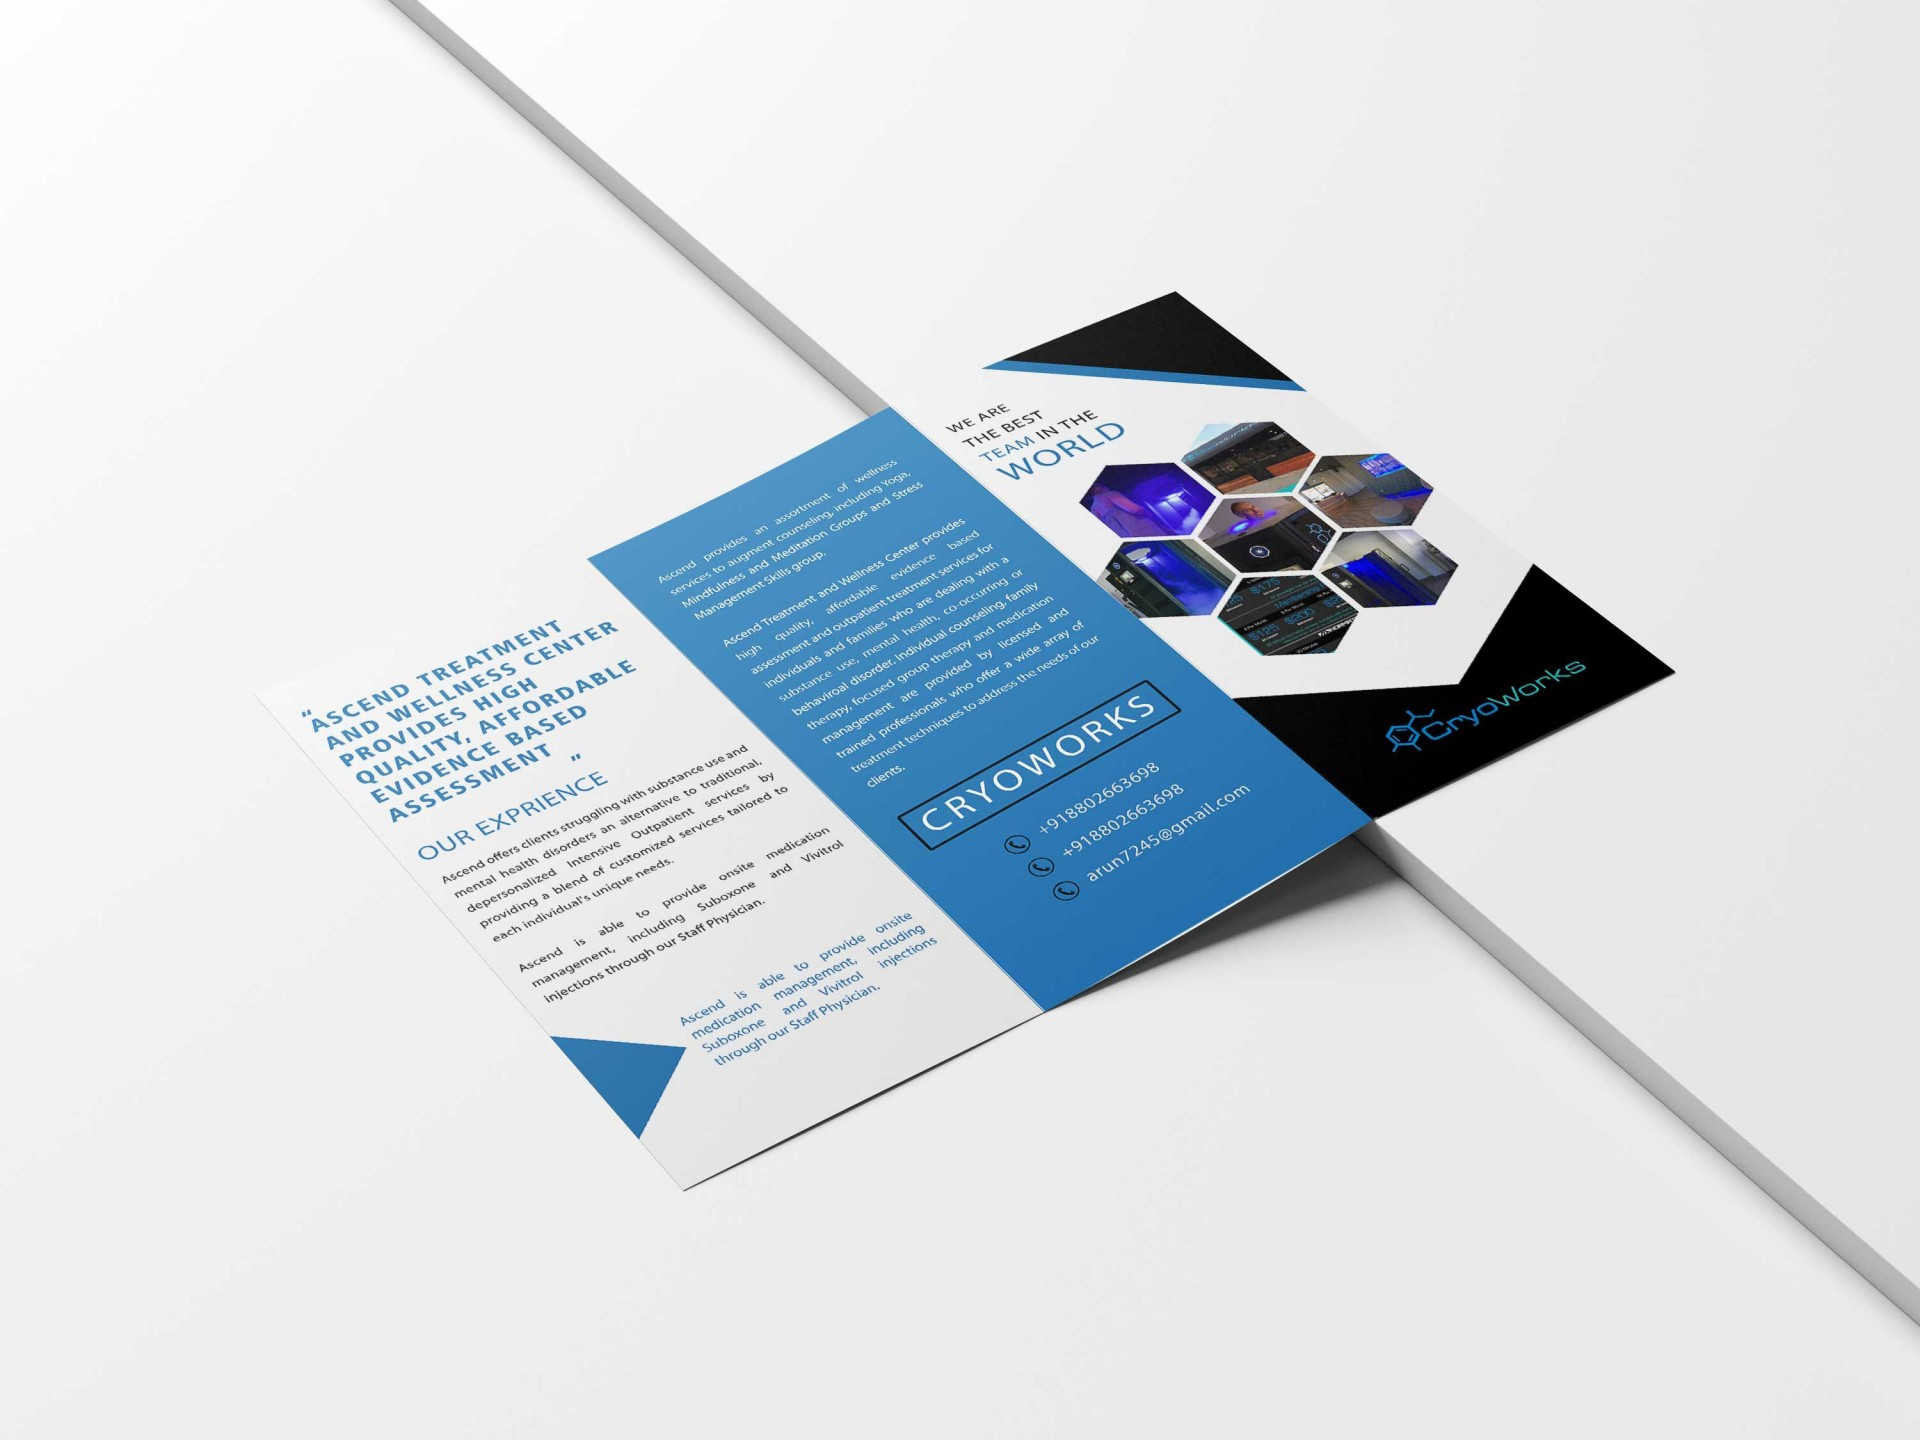 004 Top Photoshop Brochure Design Template Free Download Highest Clarity 1920